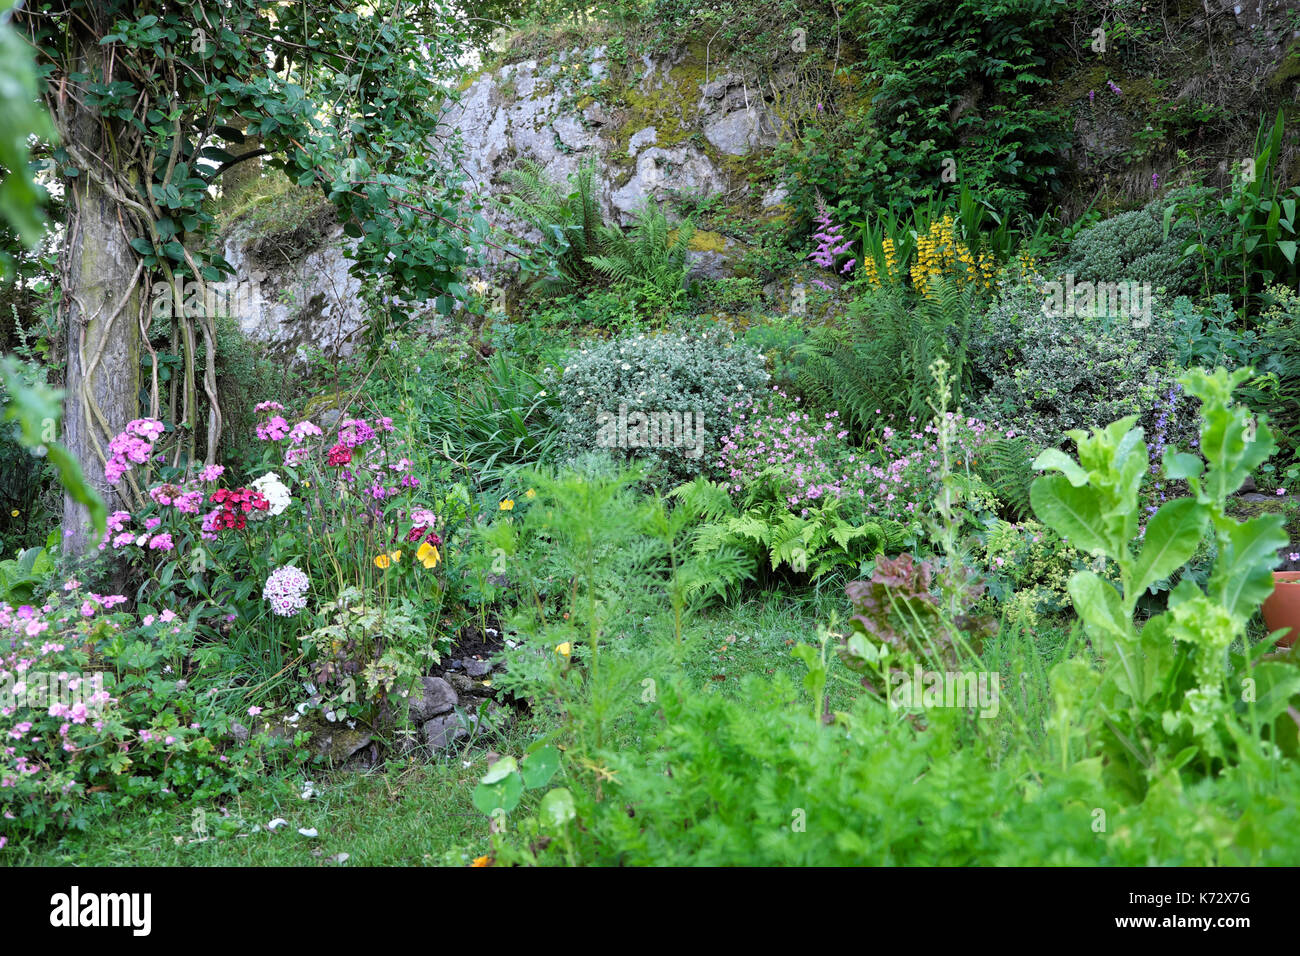 Backyard country cottage garden honeysuckle climbing pole Sweet William & herbaceous border flowers in July in rural Wales UK   KATHY DEWITT - Stock Image